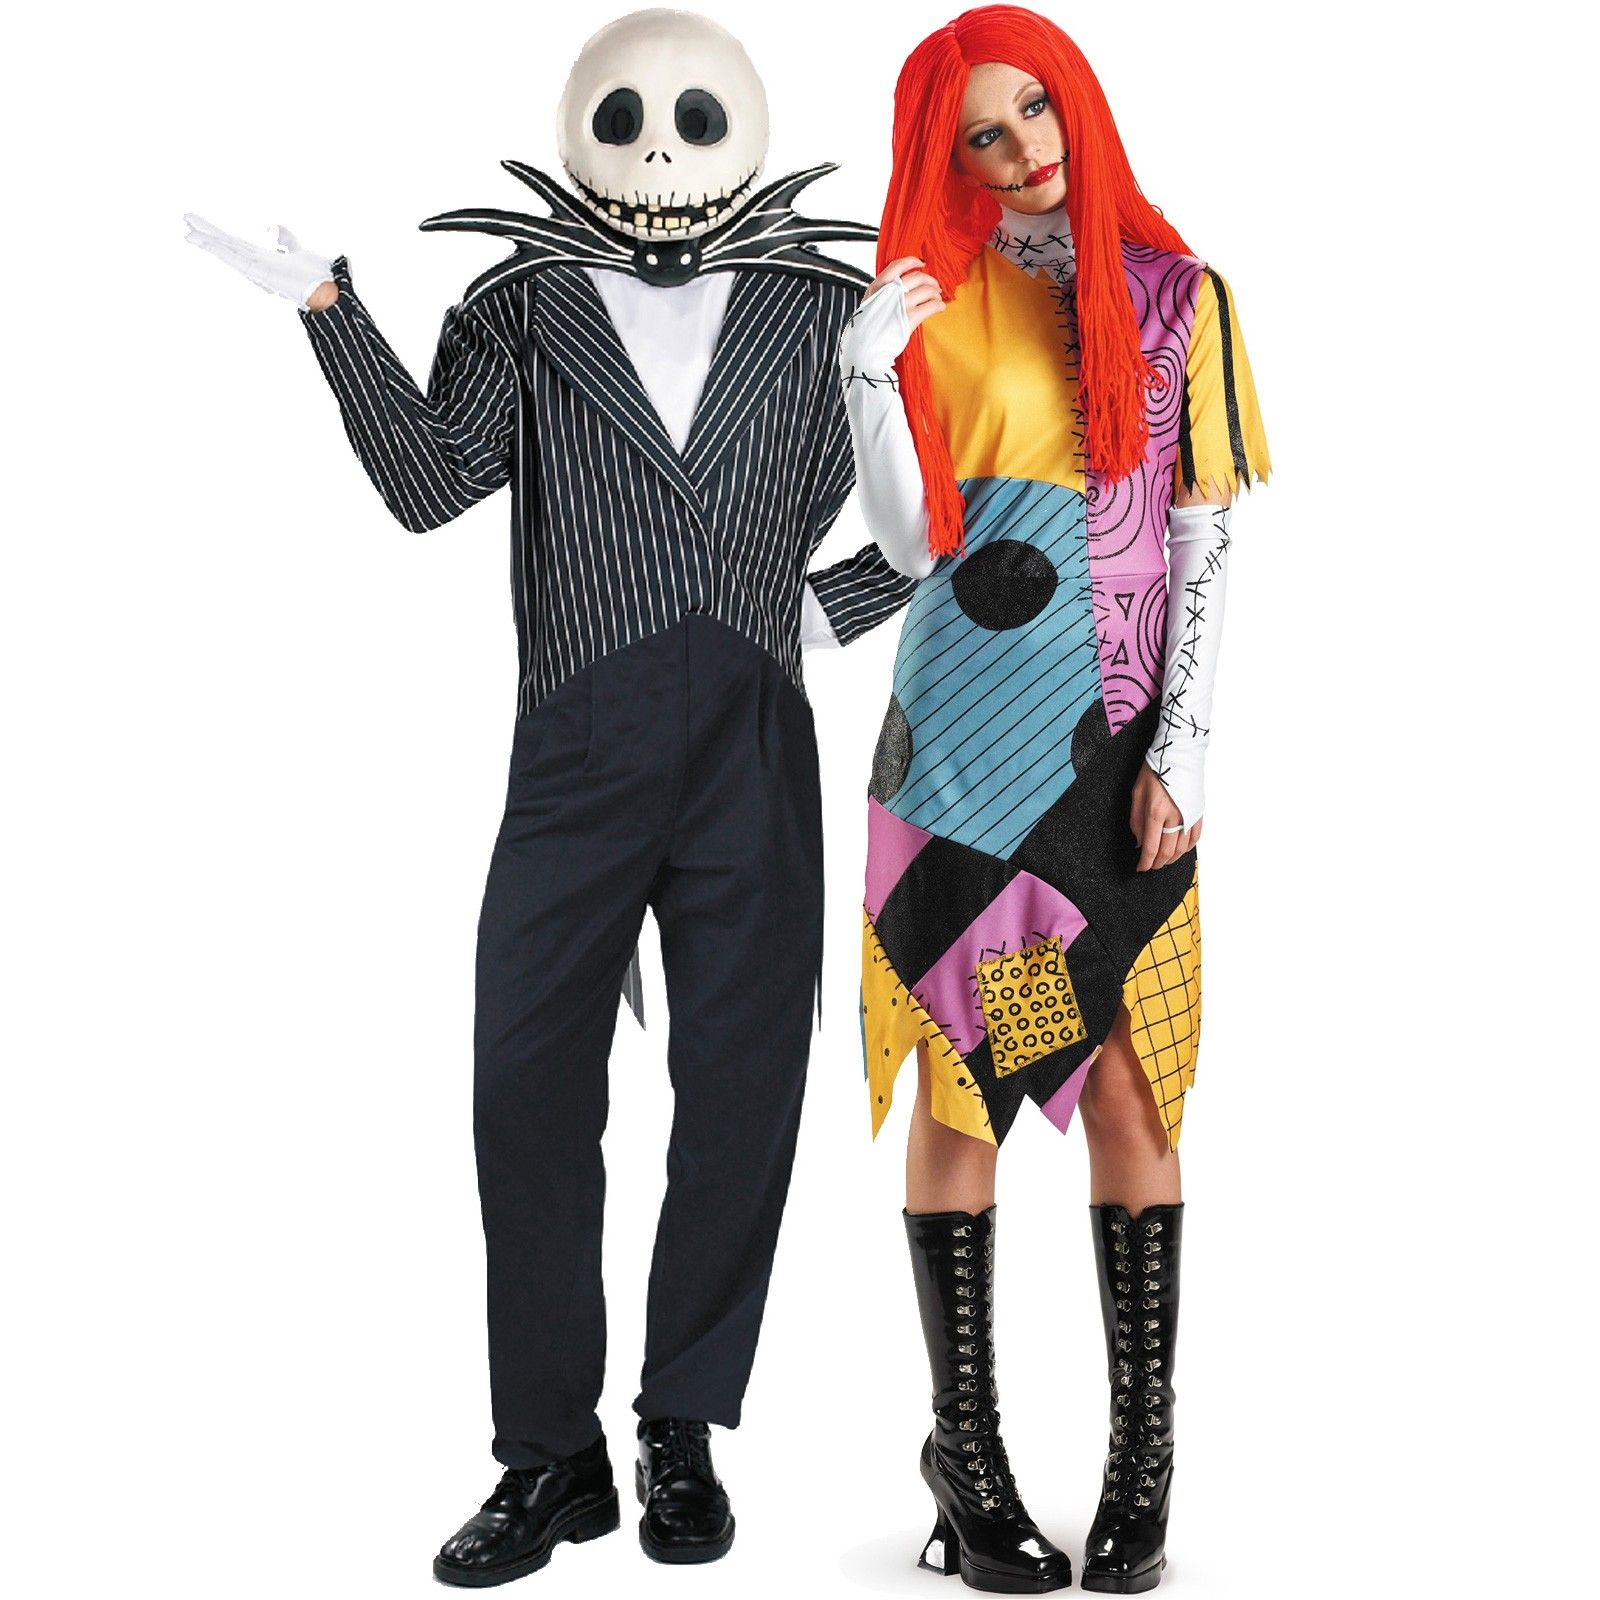 jack skellington and sally nightmare before christmas couples